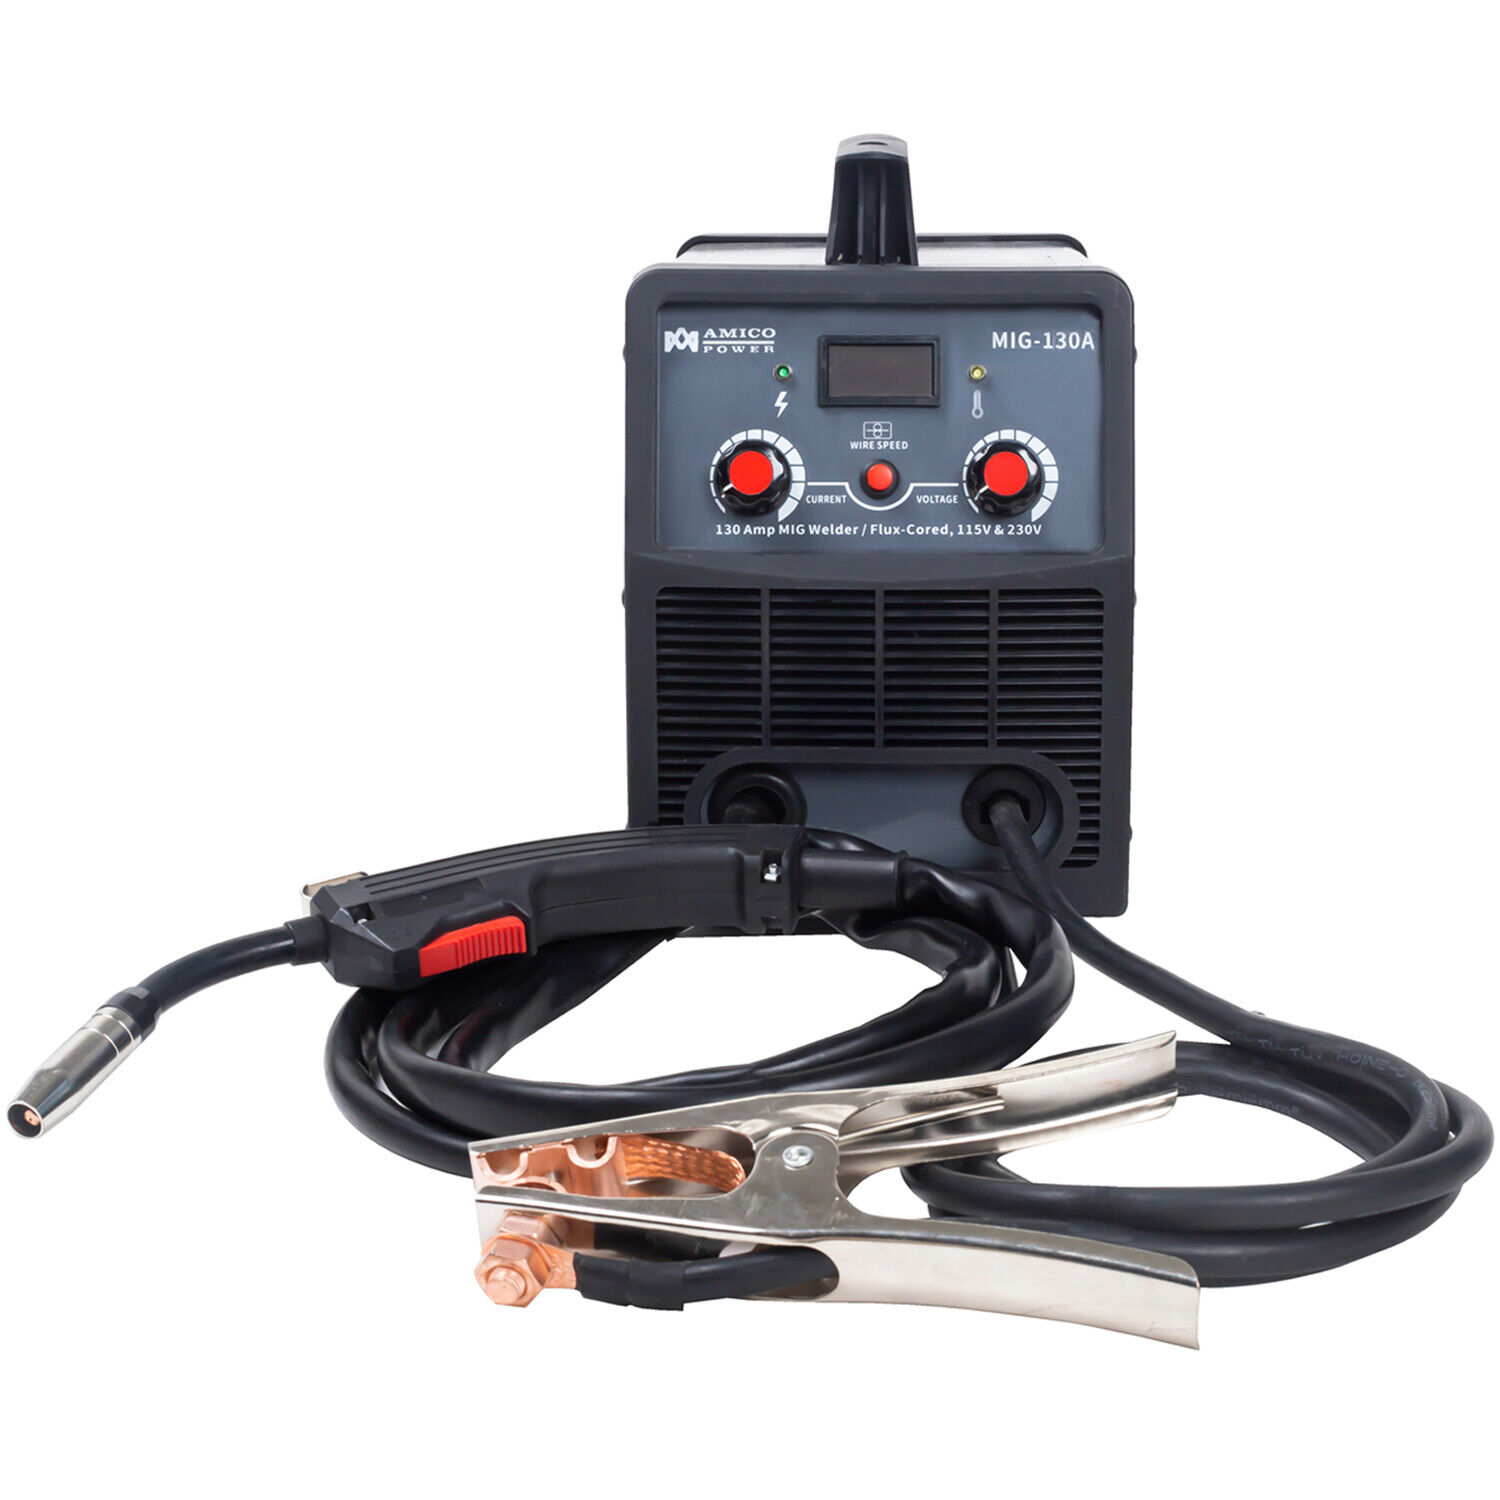 New AMICO MIG-130 Amp Flux Core Gasless Welder, 115/230V Dual Voltage Welding New.